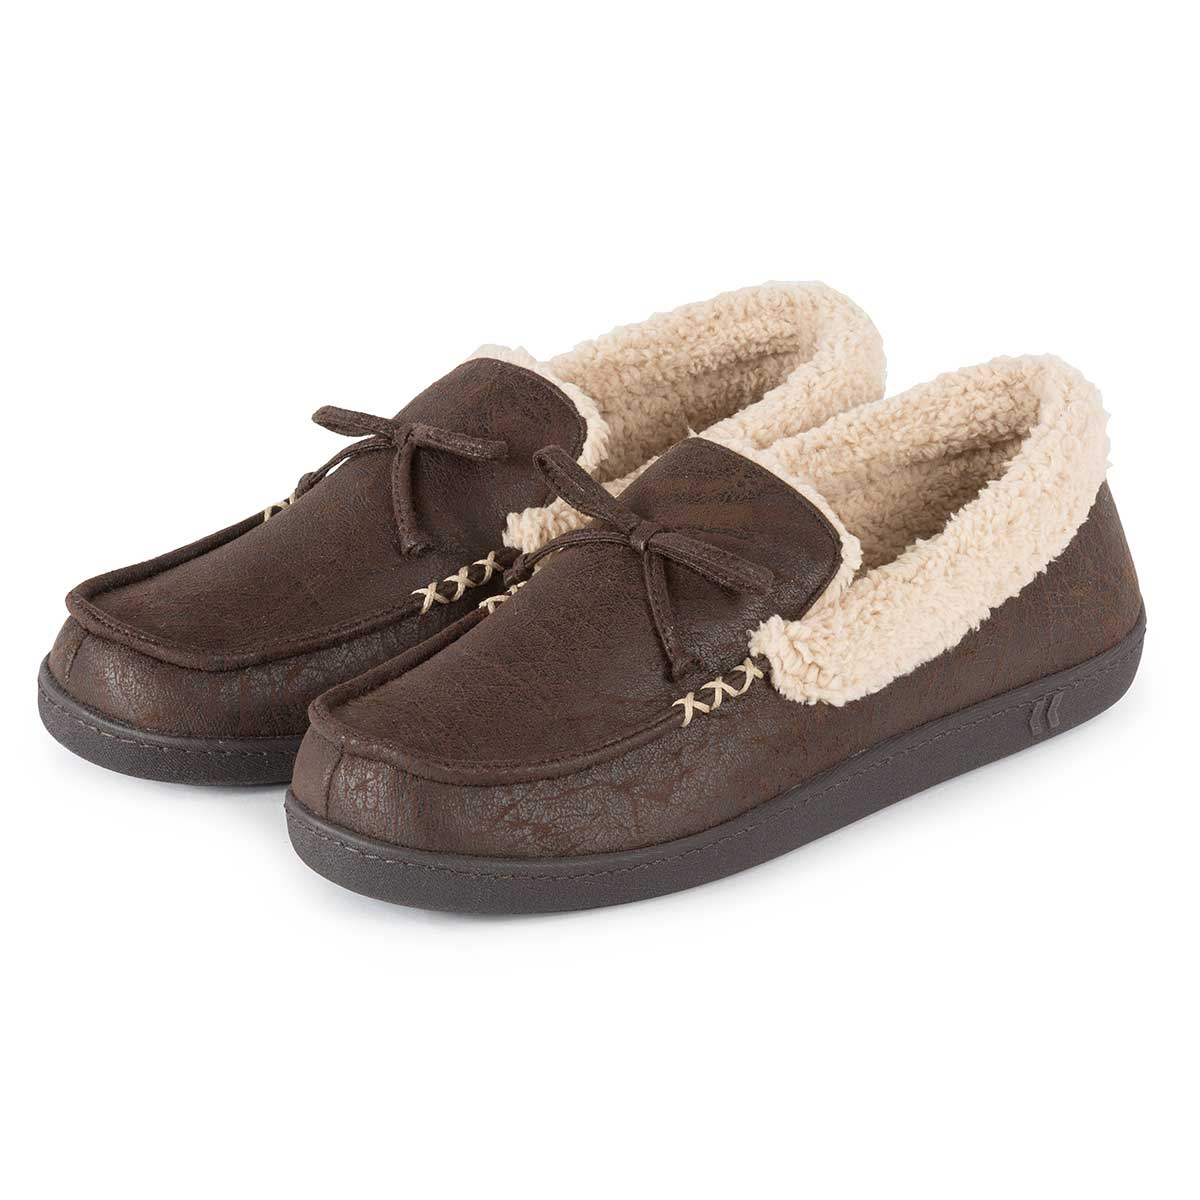 Mens Sherpa Slippers 28 Images Isotoner Mens Microsuede Moccasin Style Sherpa Lined Muk